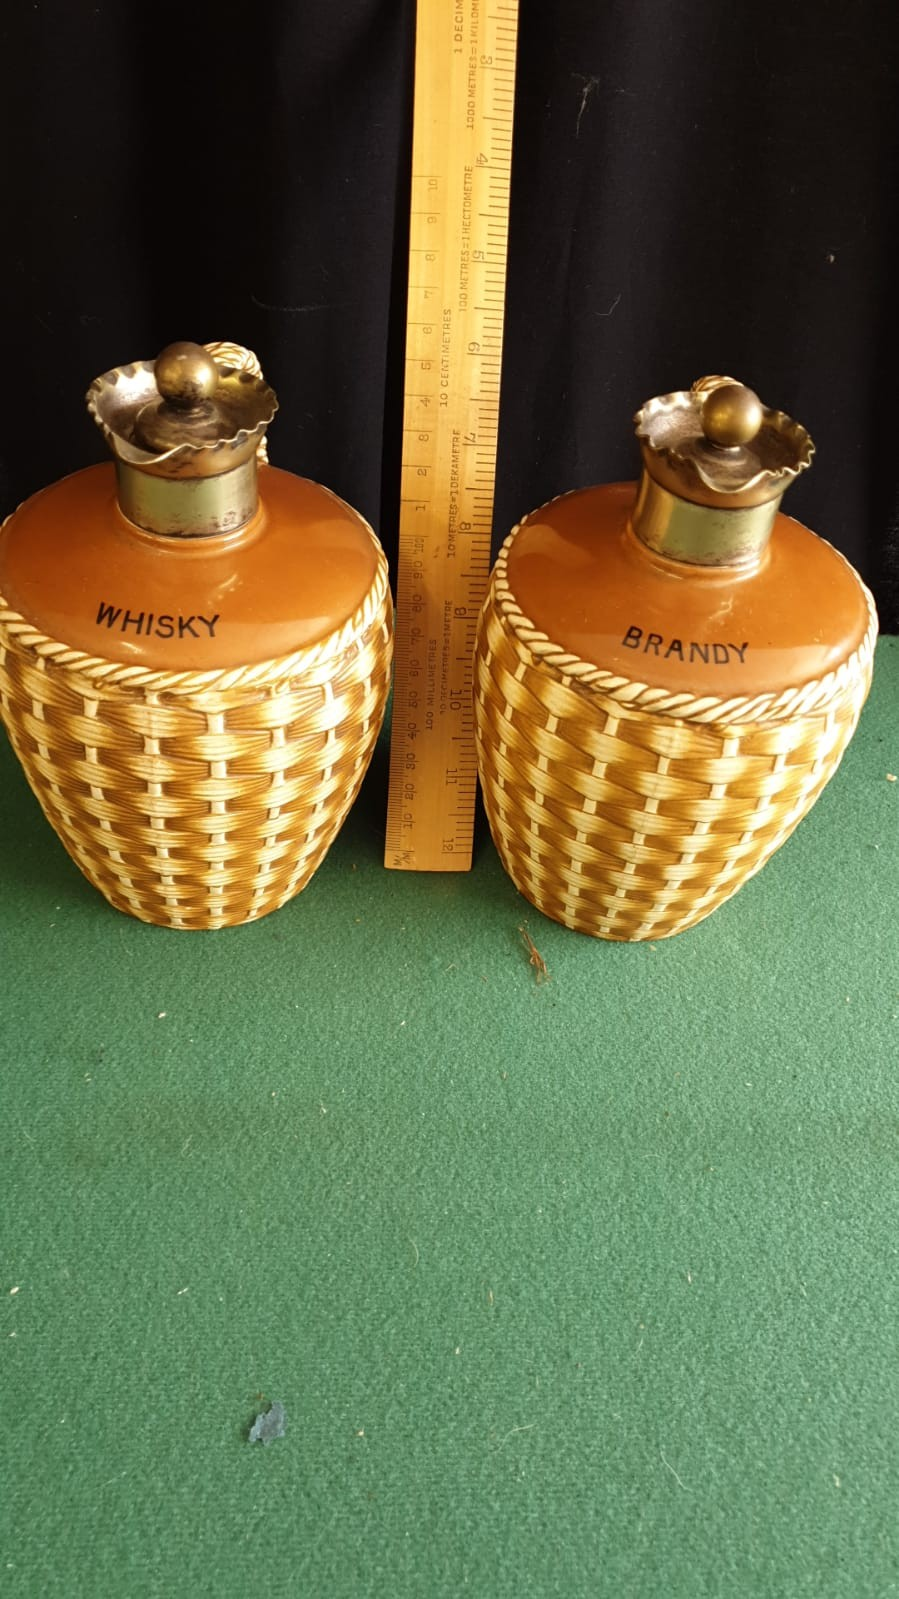 Pair Of Victorian Glazed Pottery Flagons With Silver Plated Pourers And Stoppers. - Image 2 of 3